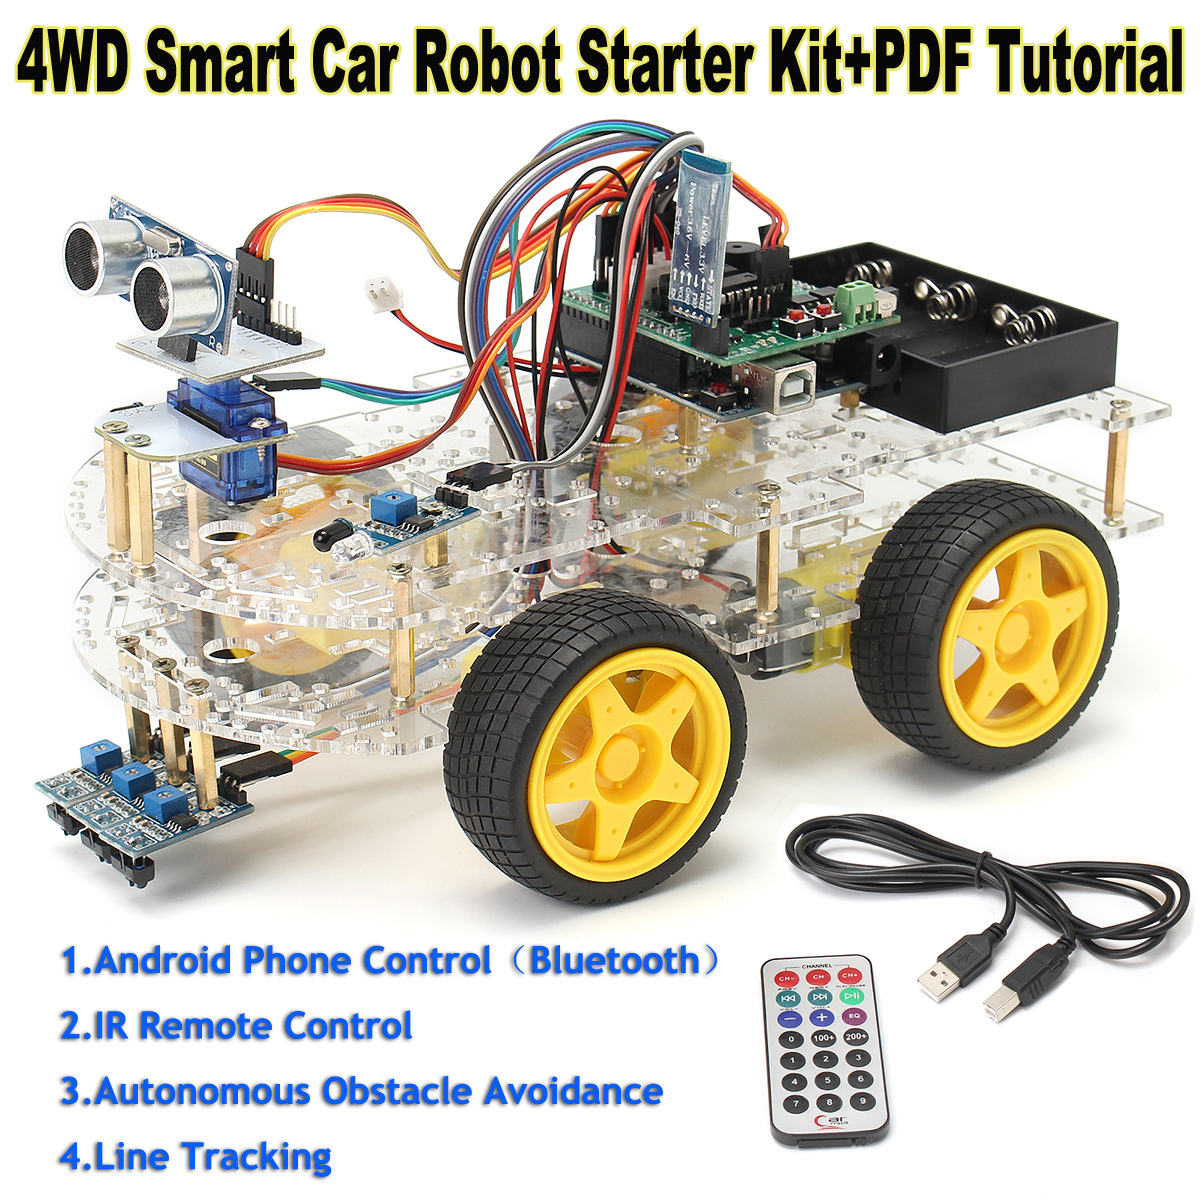 US $41 3 42% OFF|4WD Smart Car Robot Learning Starter Kit for Arduino  Programmable Robot DIY-in Integrated Circuits from Electronic Components &